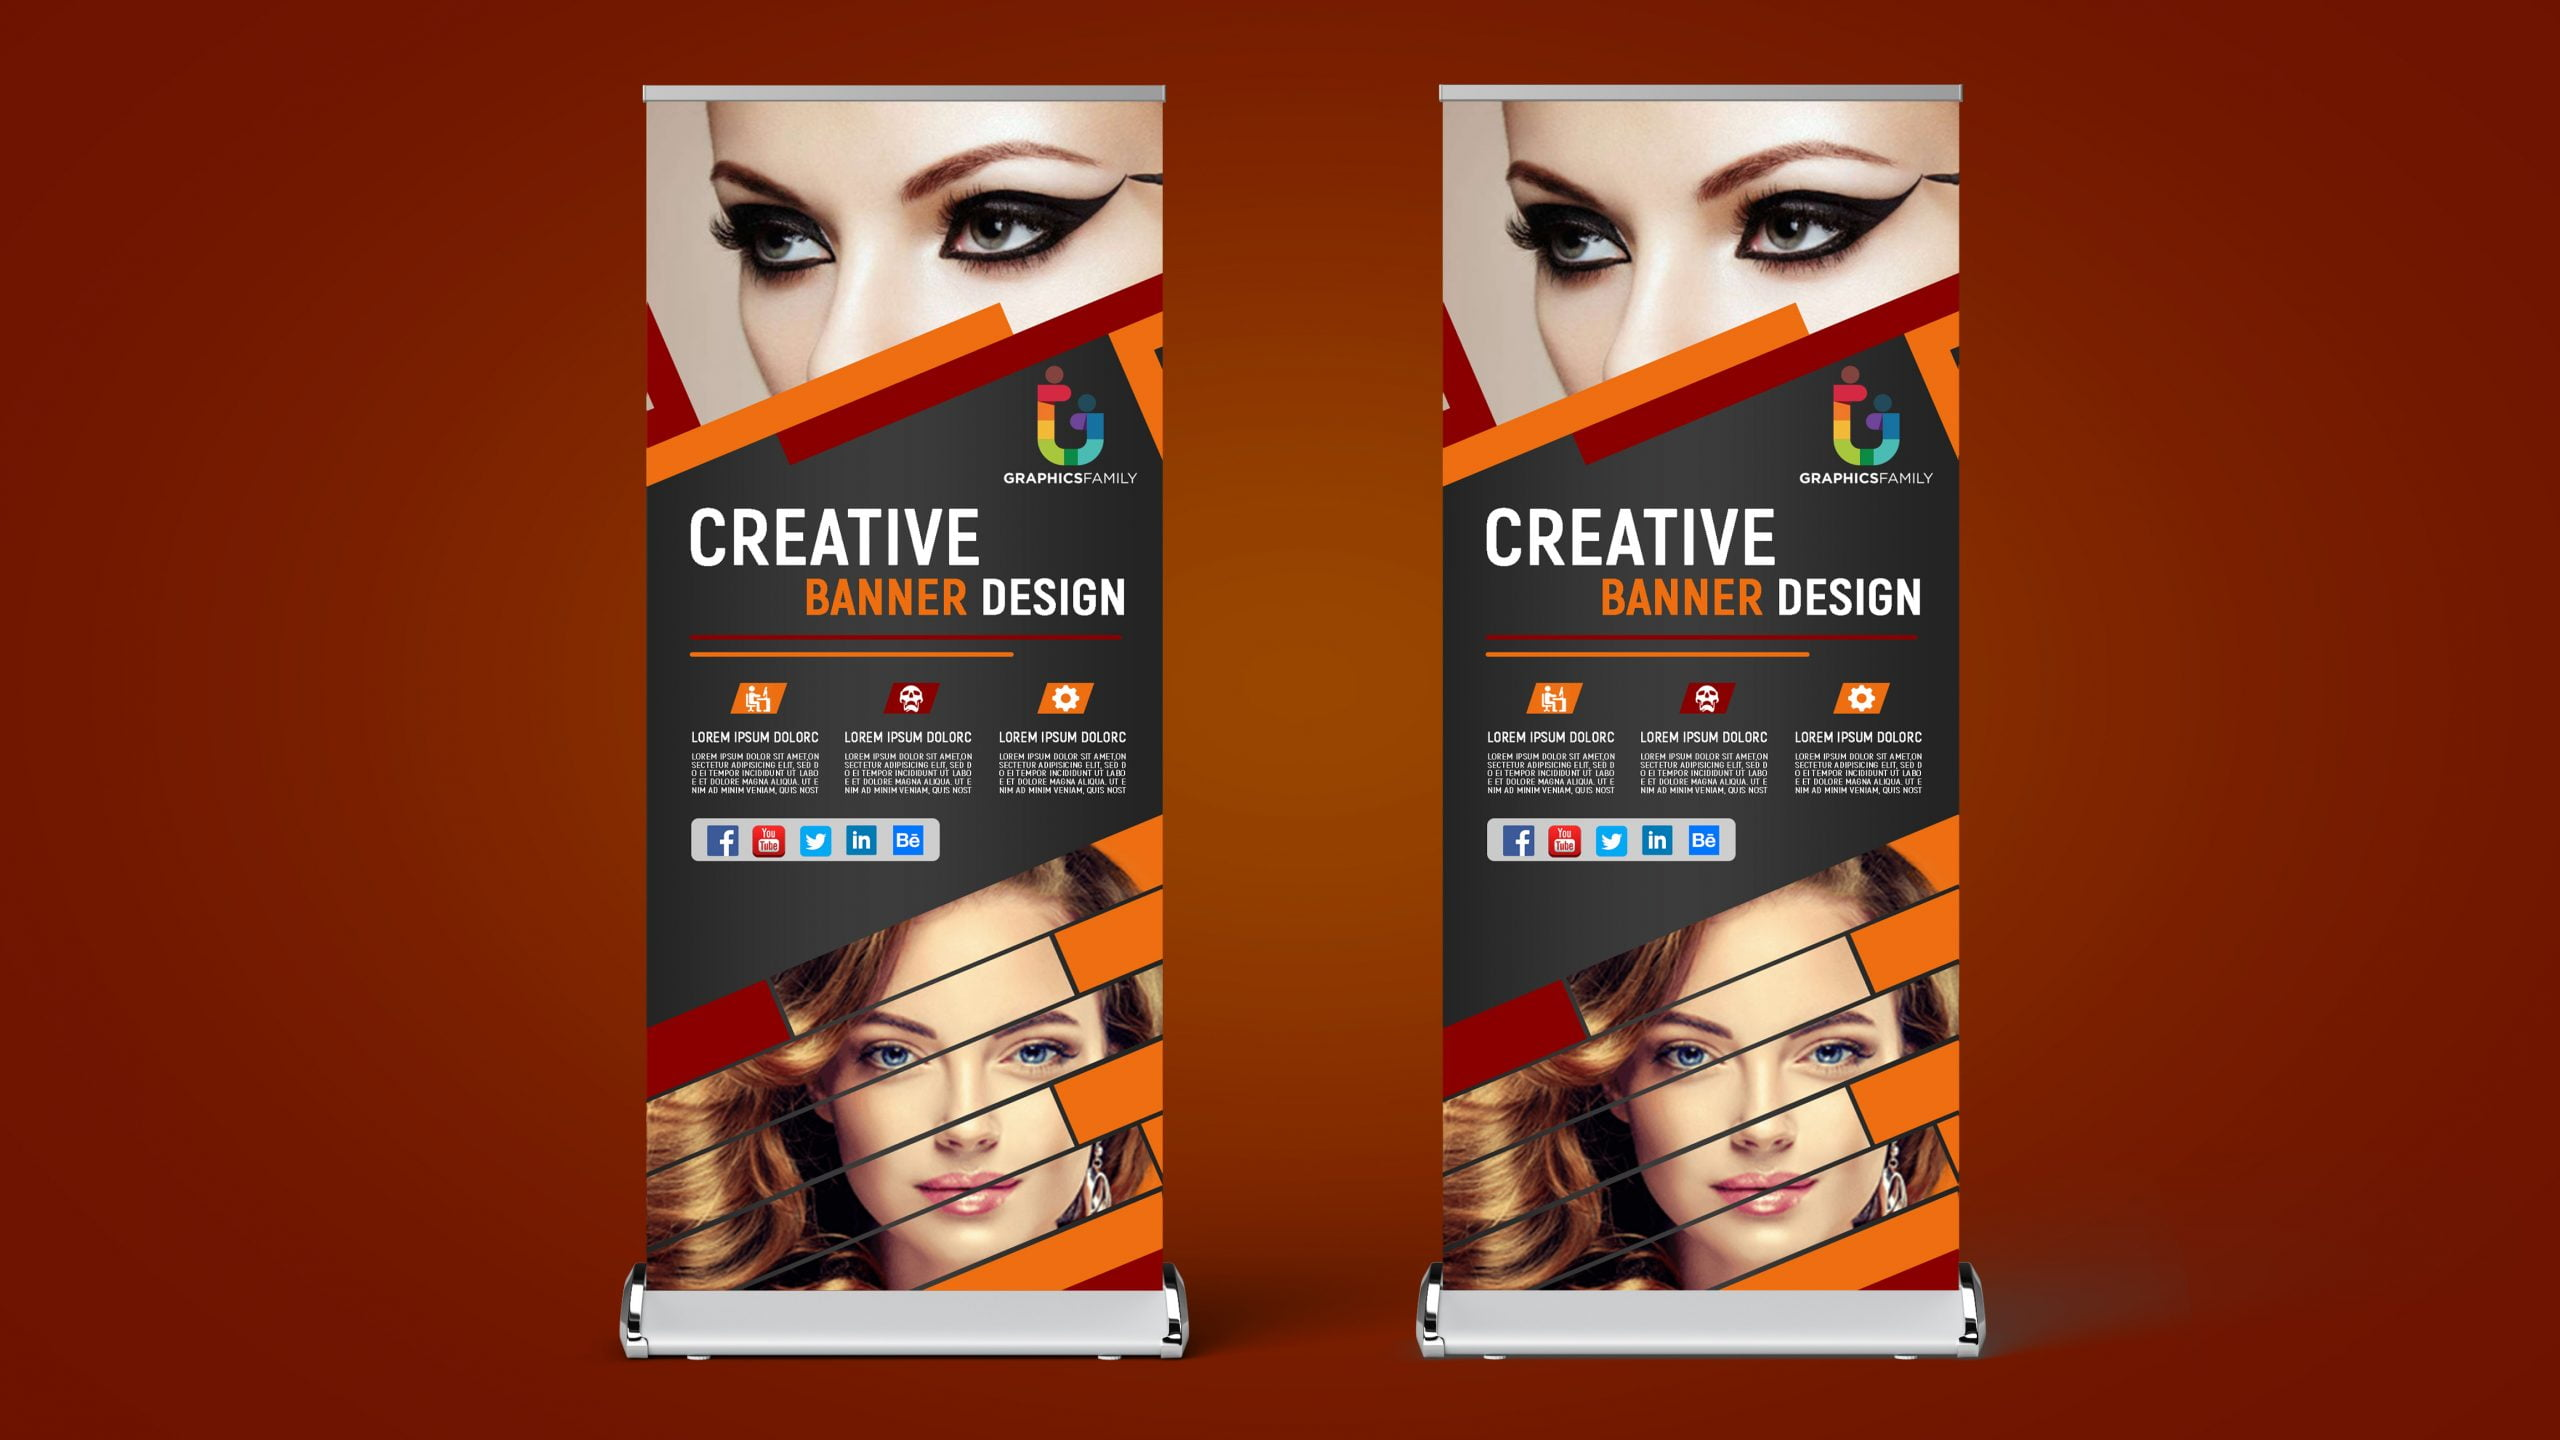 Beauty Parlor Roll Up Banner Design Free Psd